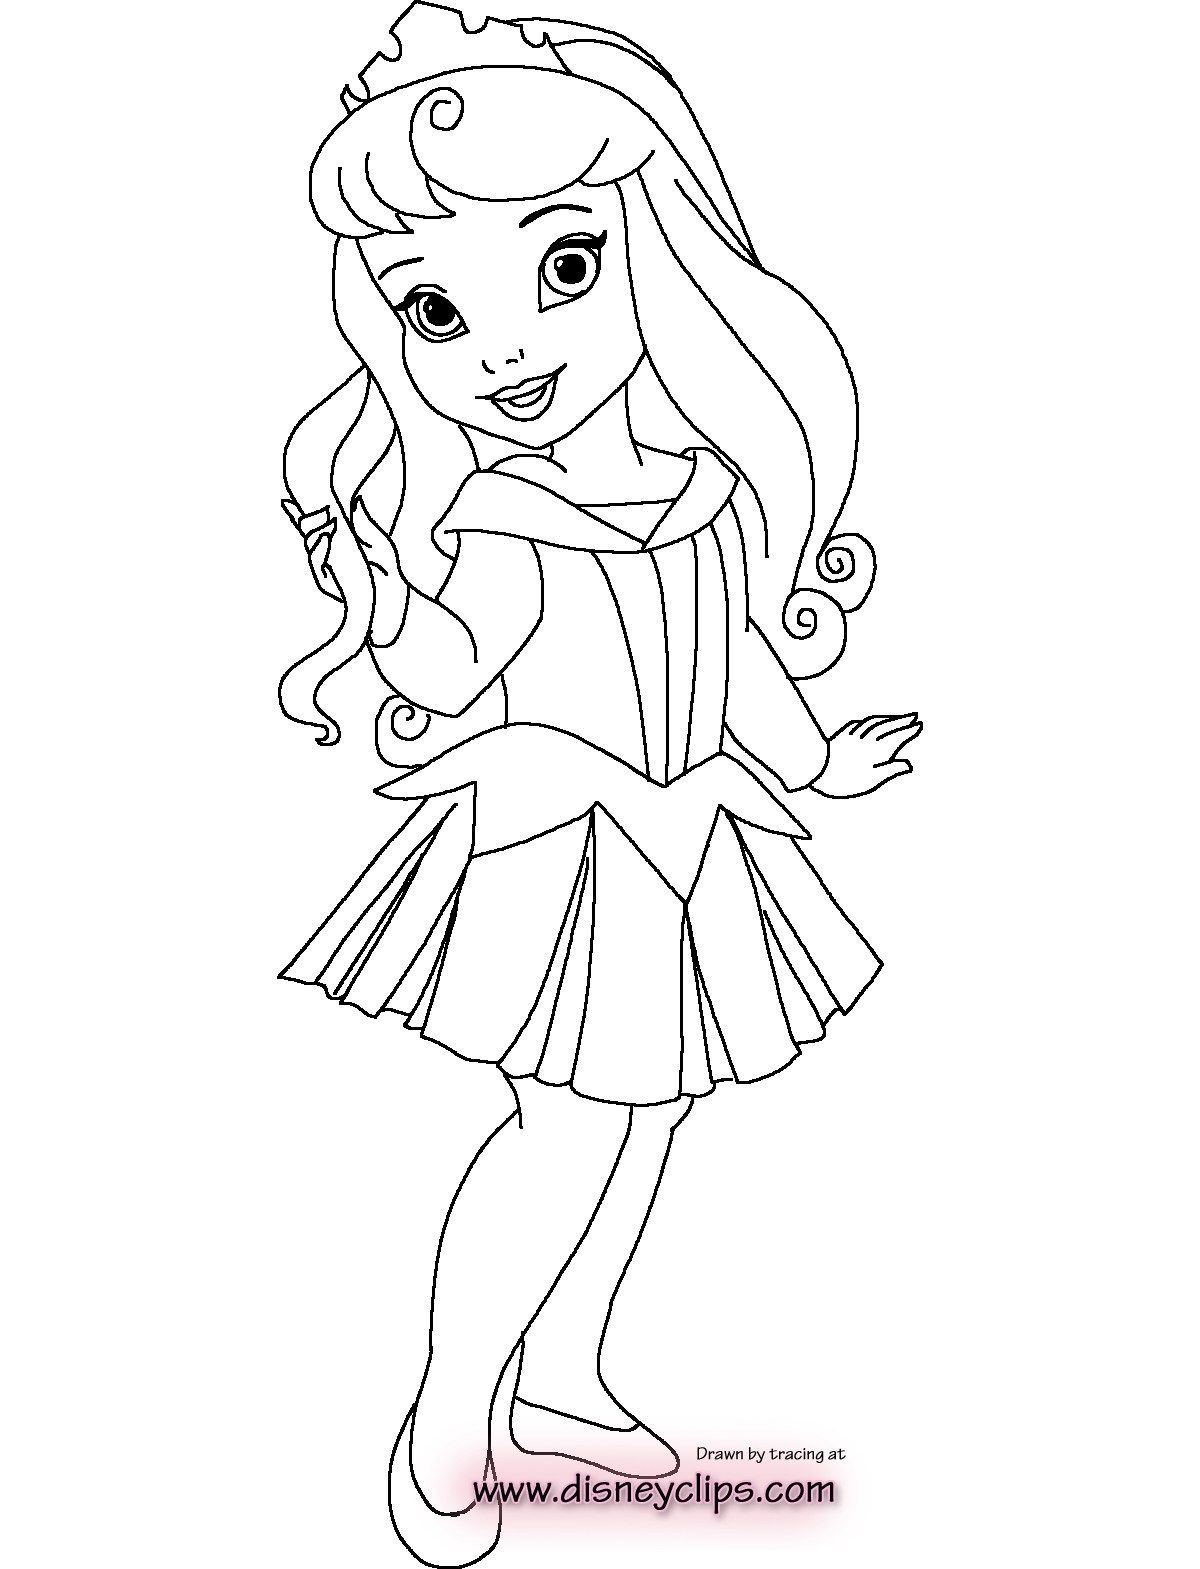 22 Great Photo Of Belle Coloring Pages Davemelillo Com Disney Princess Coloring Pages Princess Coloring Pages Belle Coloring Pages